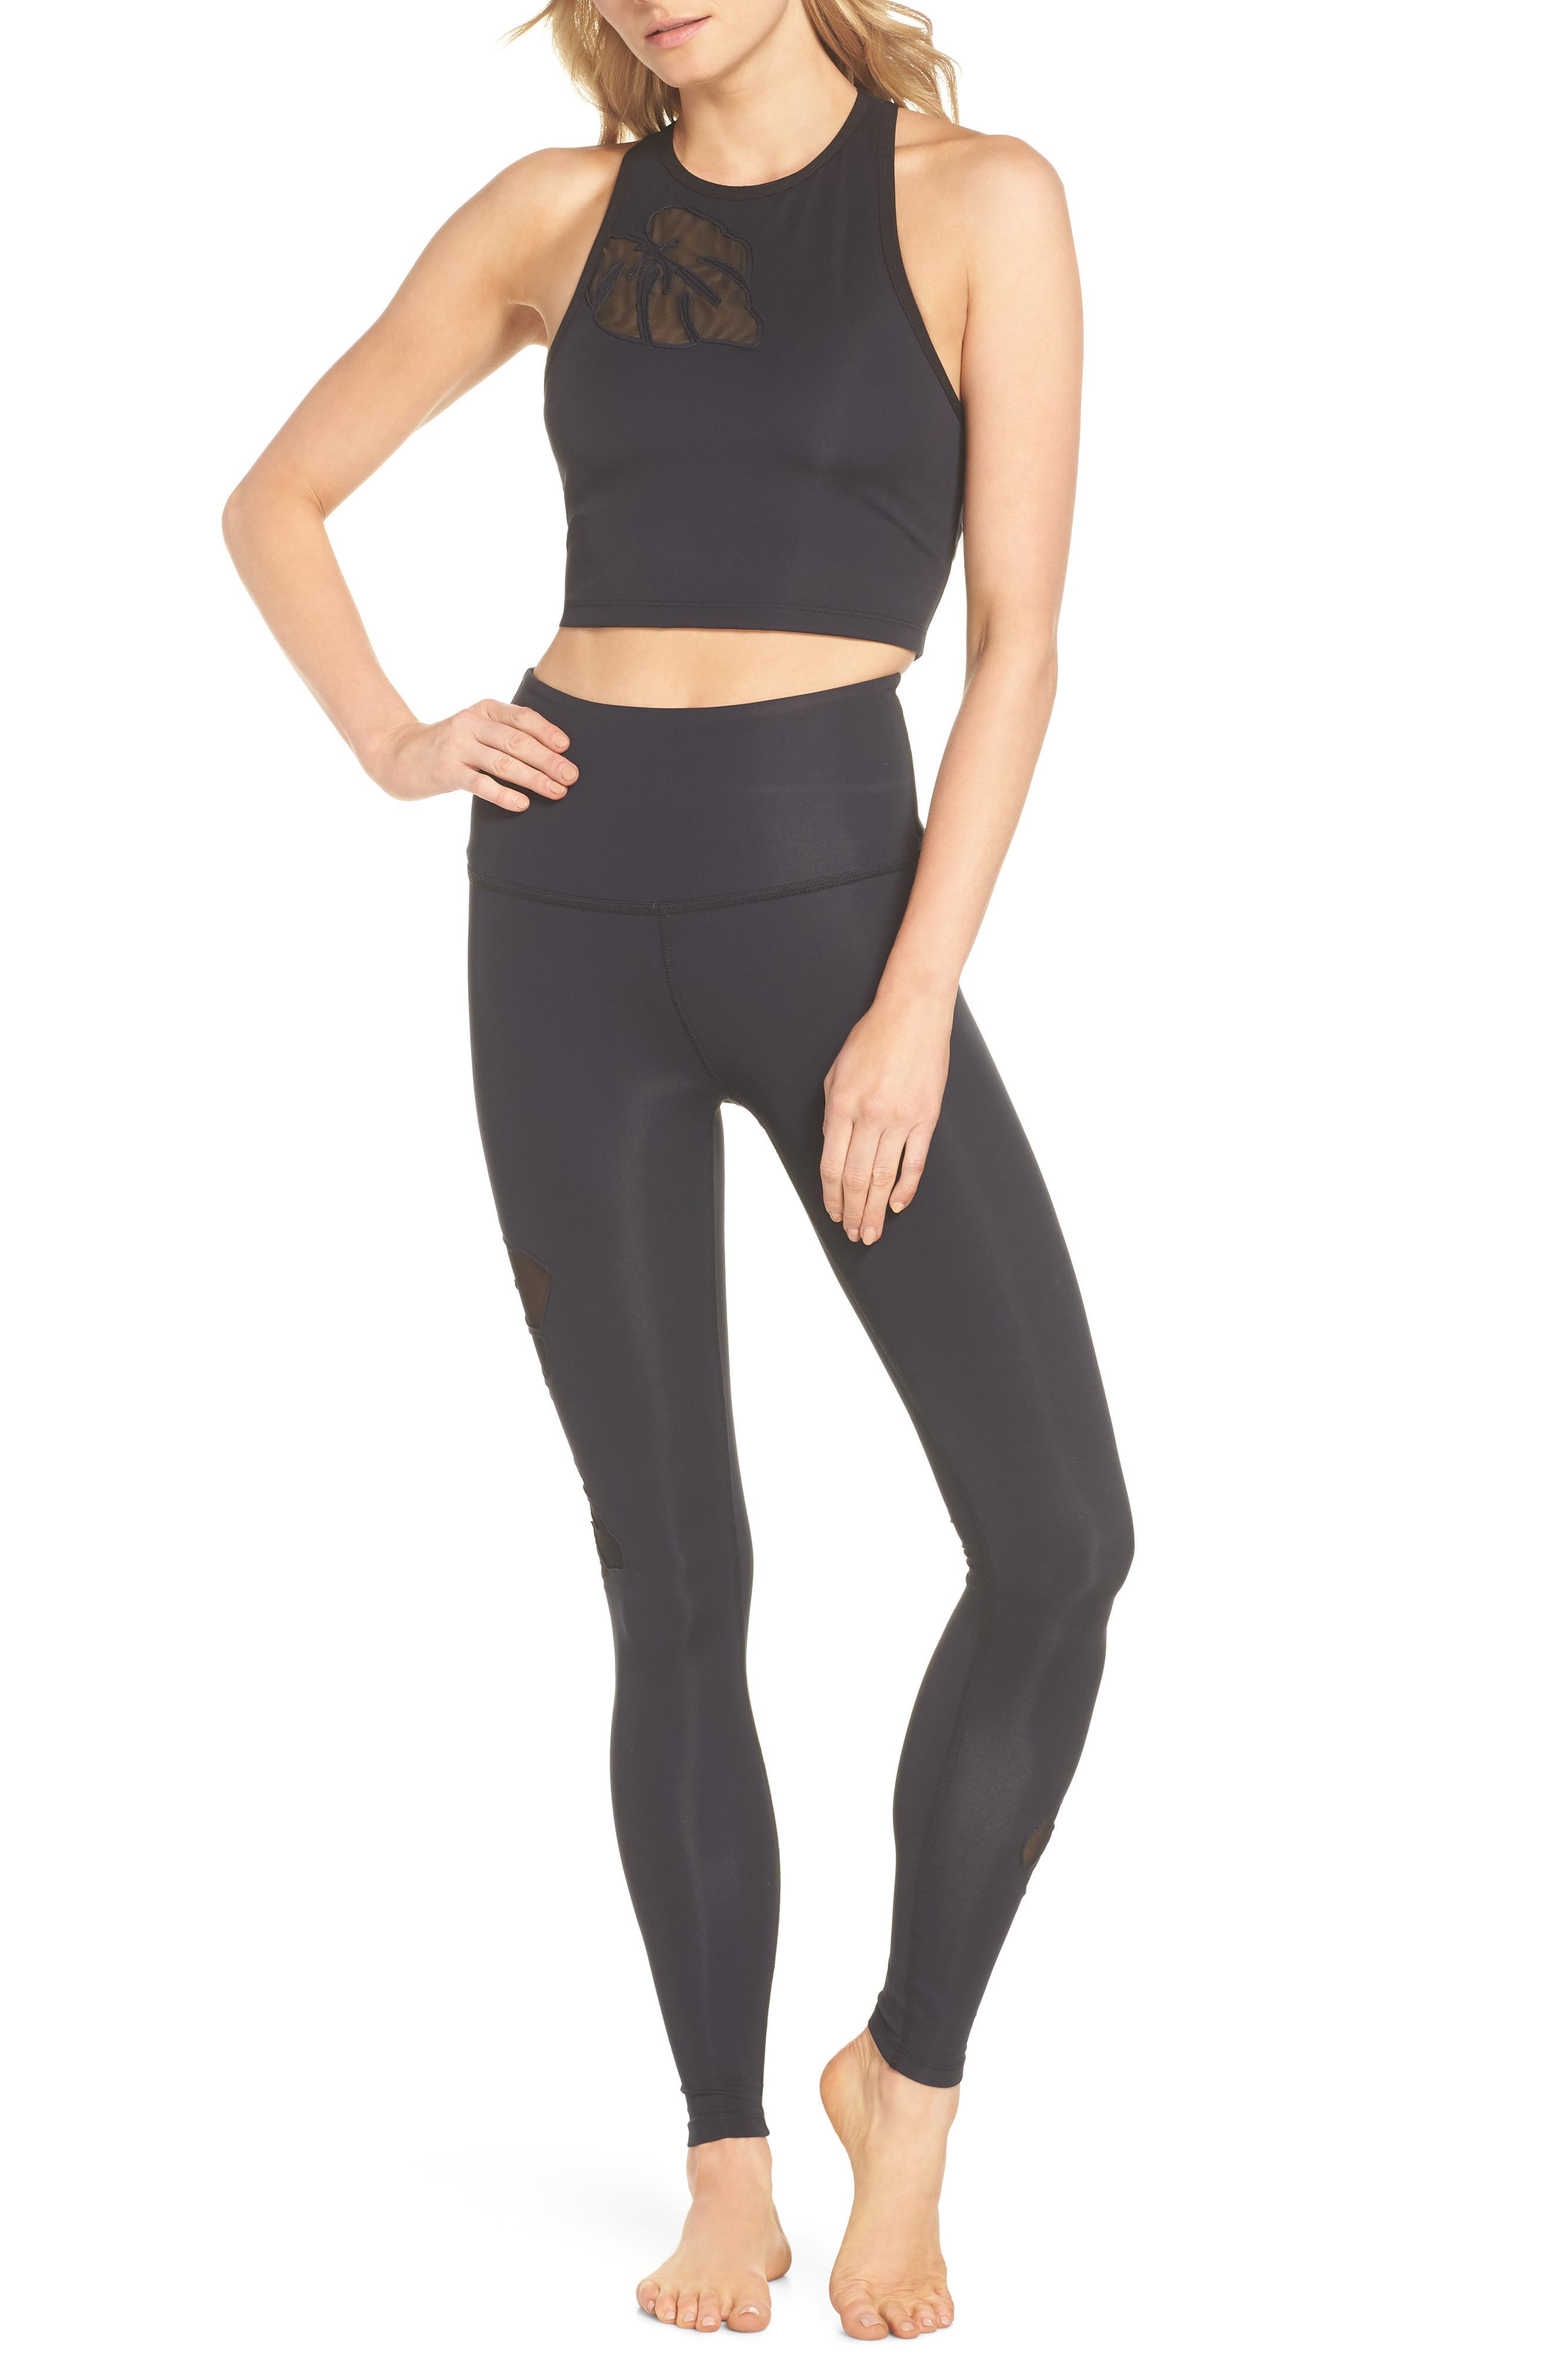 Take Leaf High Waist Leggings,                             Alternate thumbnail 7, color,                             Black